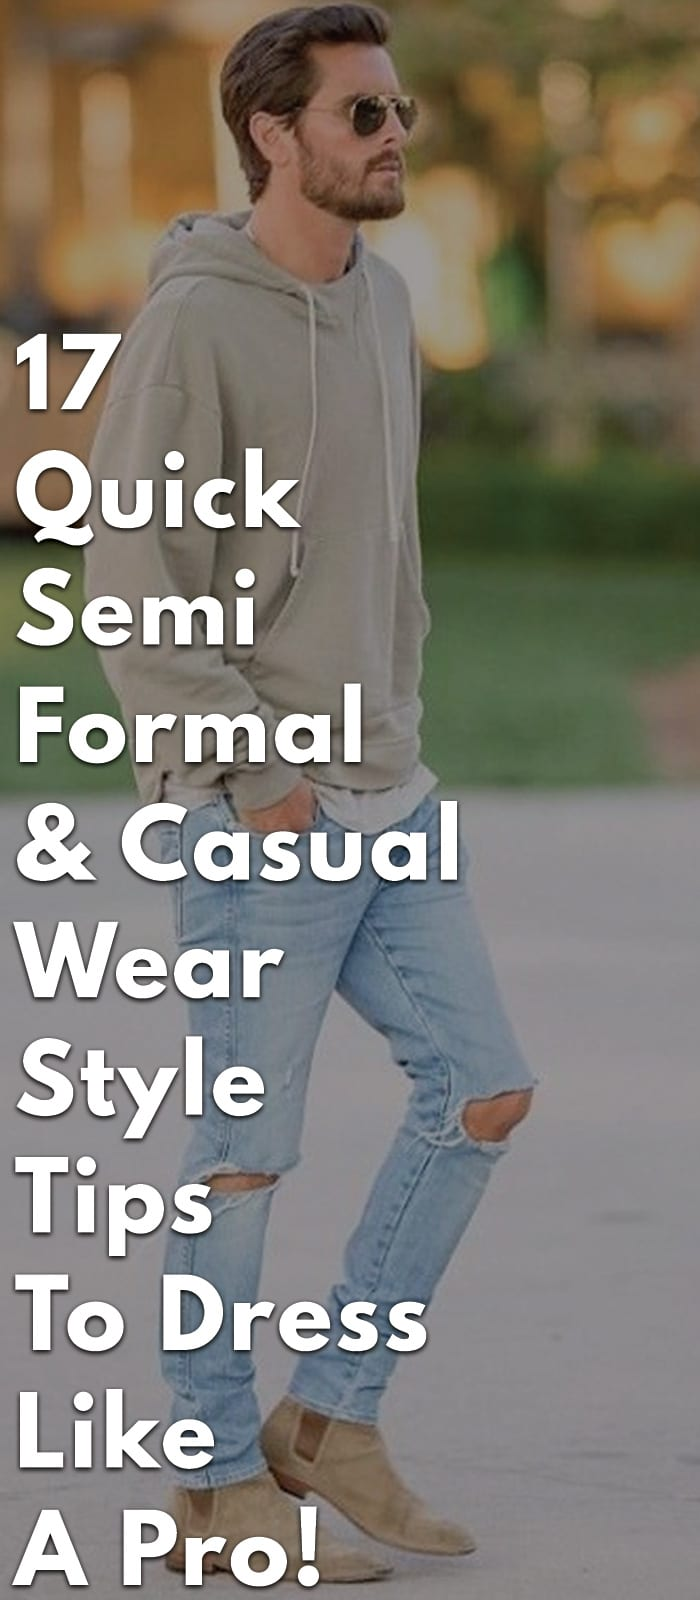 17-Quick-Semi-Formal-&-Casual-Wear-Style-Tips-To-Dress-Like-A-Pro!